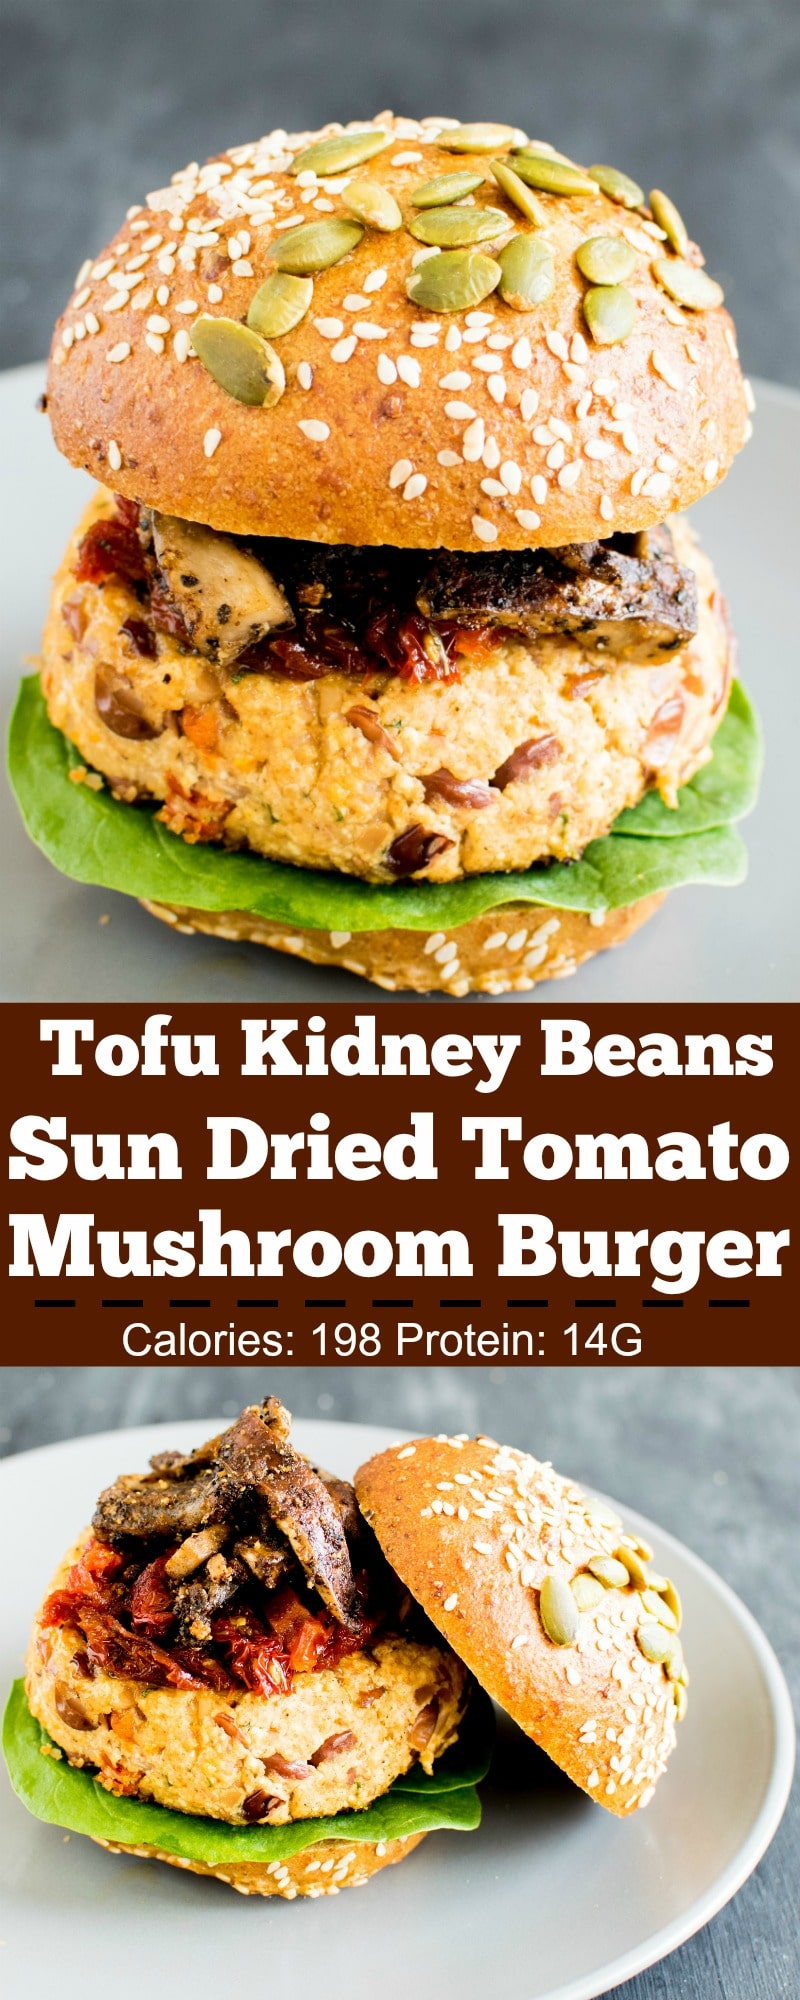 Tofu Kidney Beans Sun Dried Tomato Burger with Sauteed Mushrooms is absolutely delectable and a must try. Because of so many variety of flavors infused into one burger this recipe serves perfectly for BBQ, picnics or casual gatherings. Super easy to make and no deep frying required. Just assemble the ingredients in the bowl and place the burger patties on a grill or a pan [ VEGAN ] | kiipfit.com